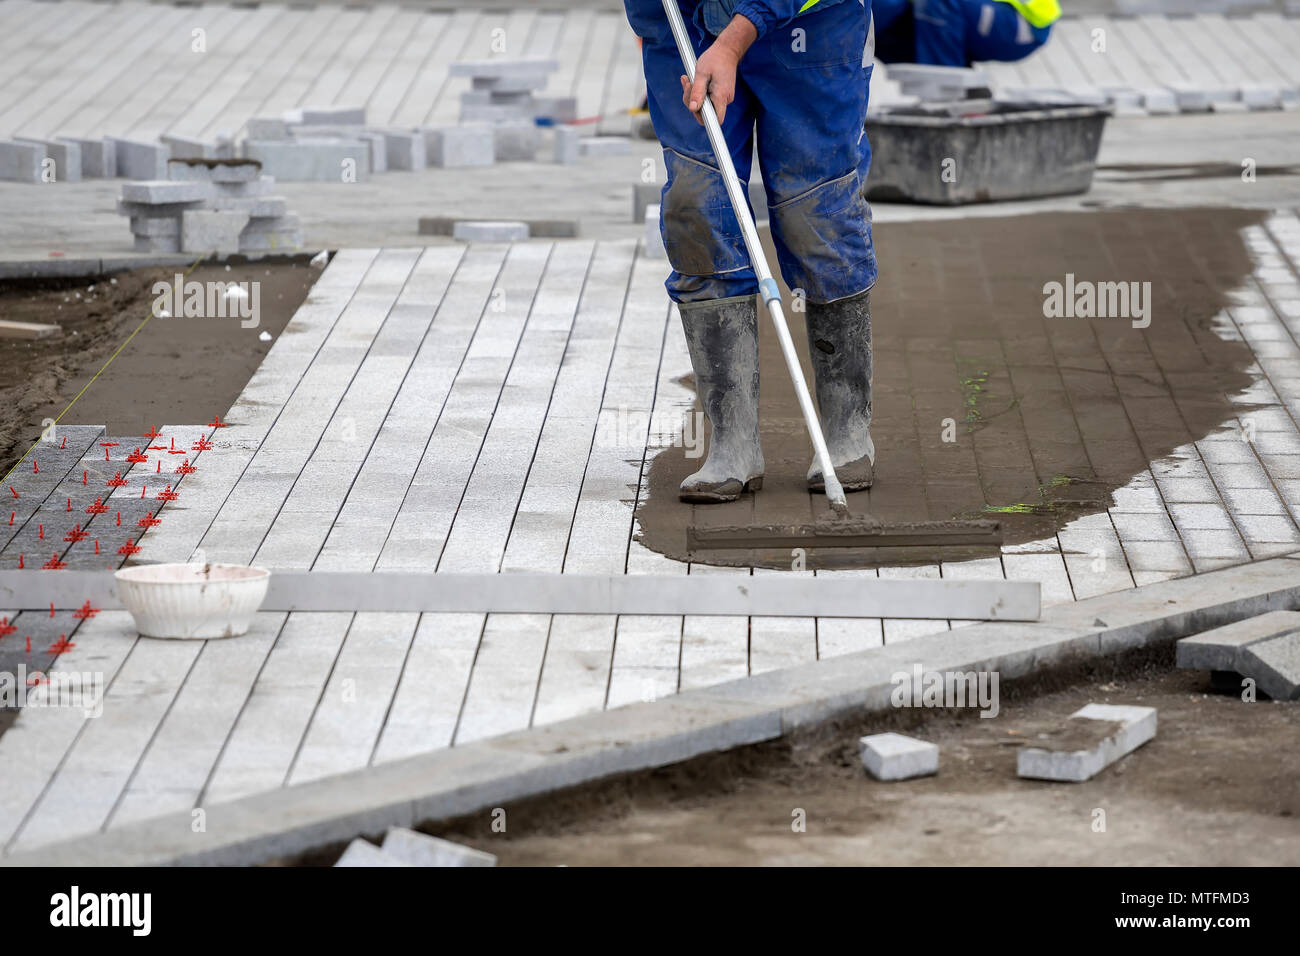 Install paver sidewalk with paving stones, using spacers to achieve consistency between tiles and involves working sand down between the paver joints  - Stock Image